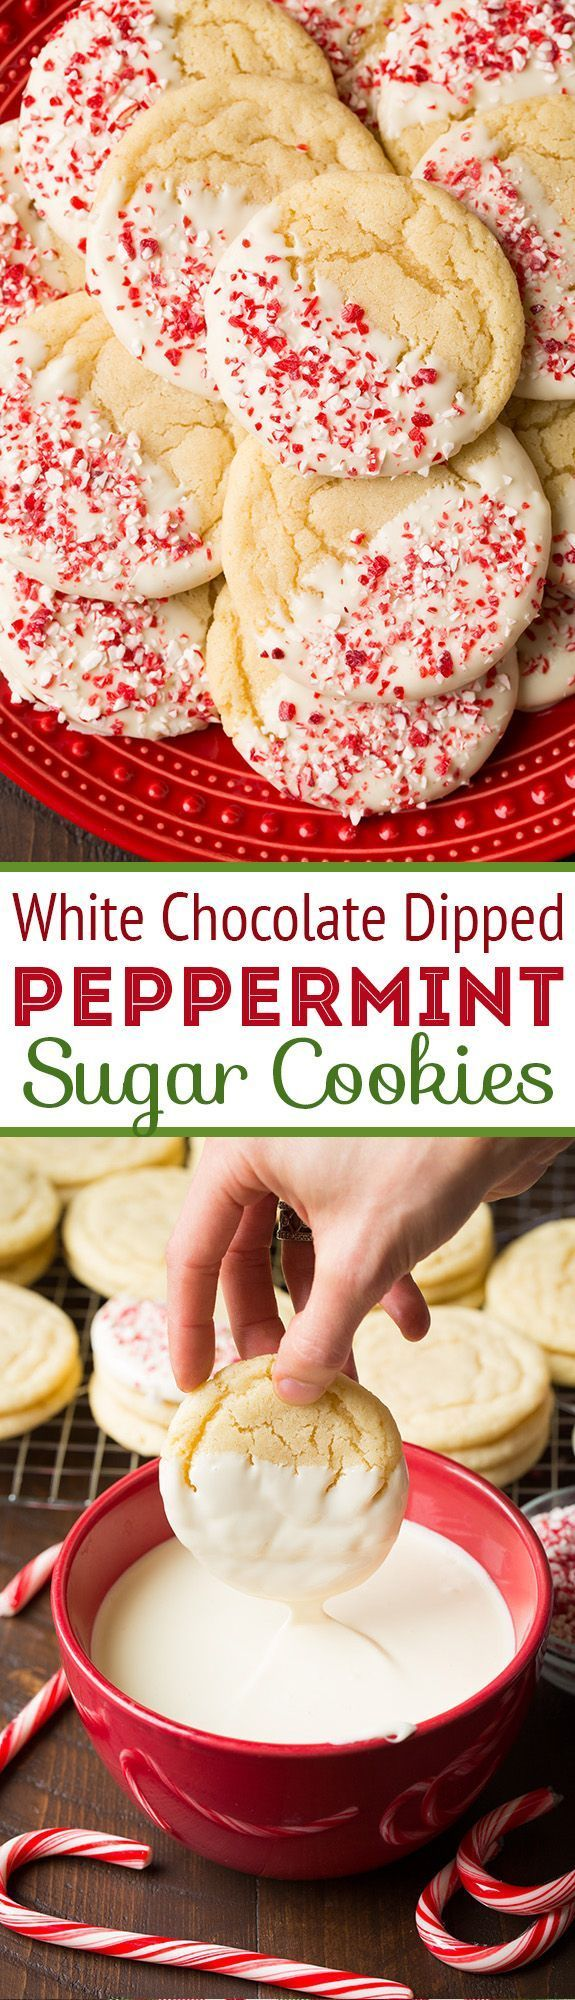 cool White Chocolate Dipped Peppermint Sugar Cookies - Cooking Classy